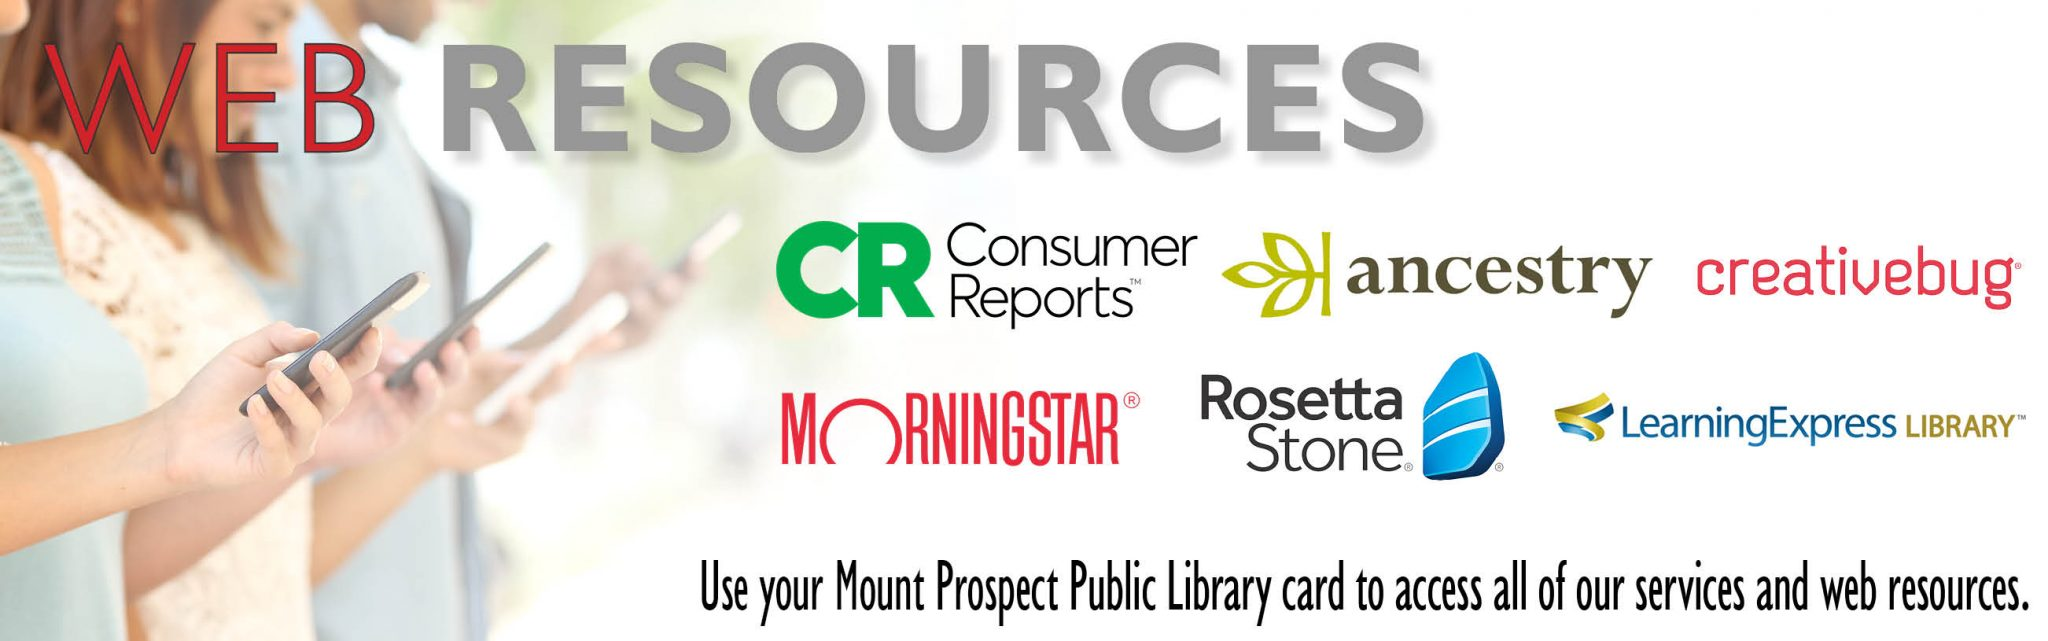 Use your Mount Prospect Public Library card to access all of our services and web resources.